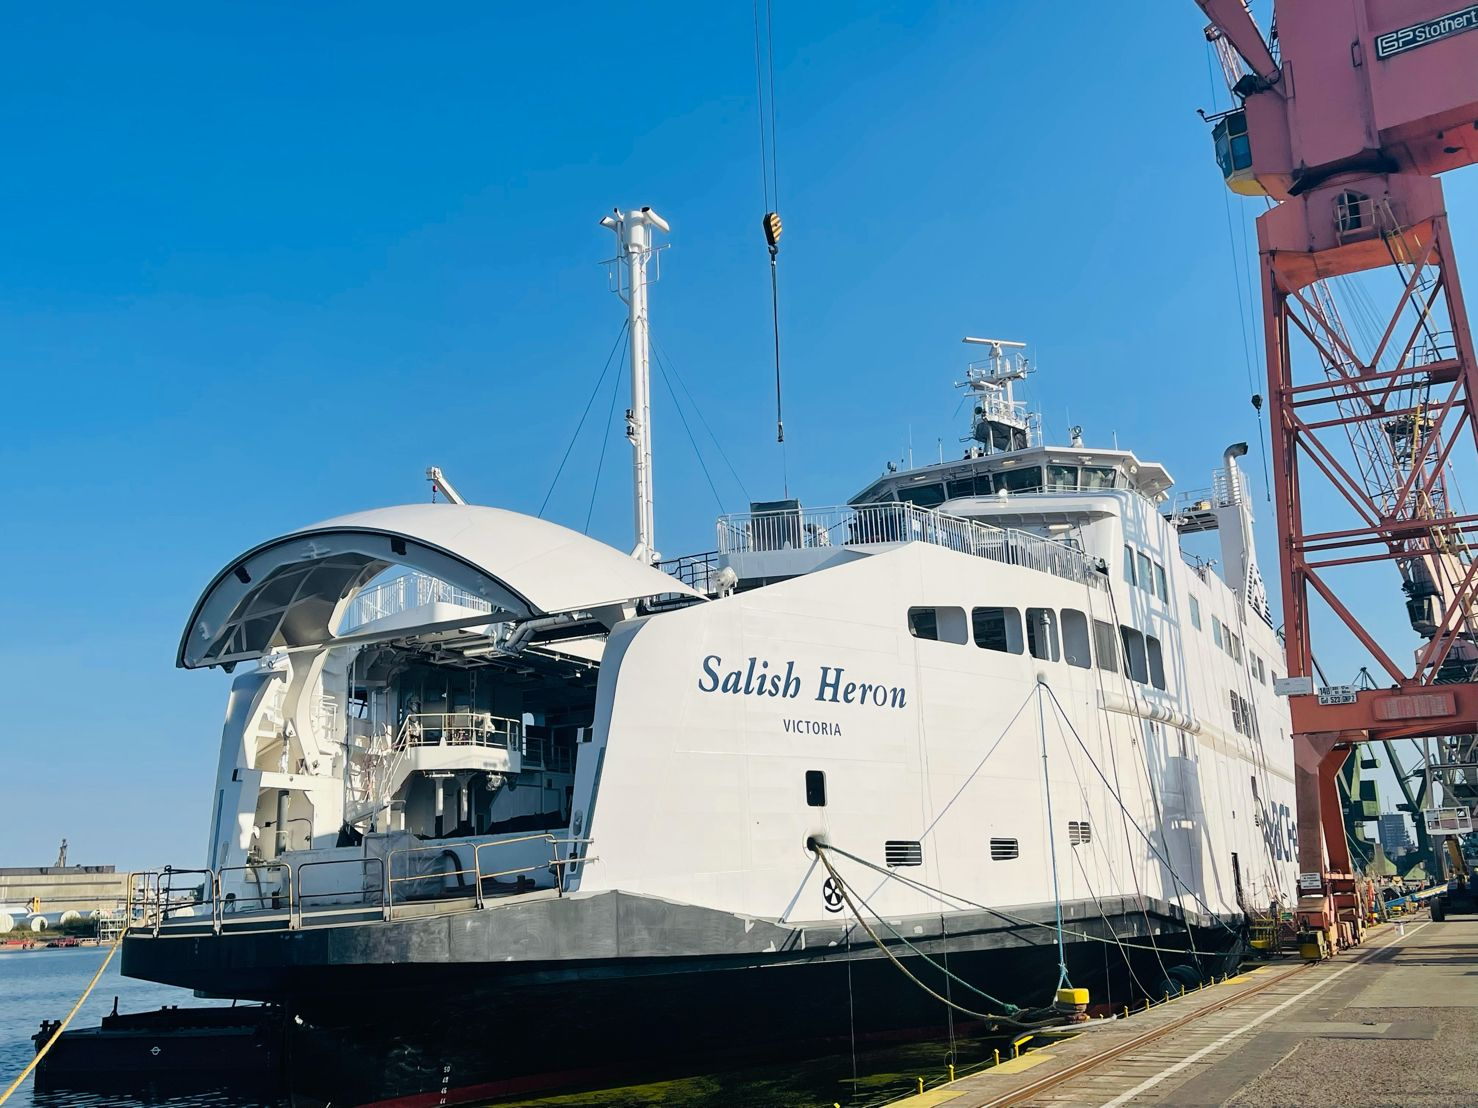 BC Ferries' newbuild wraps up first LNG bunkering op in Poland